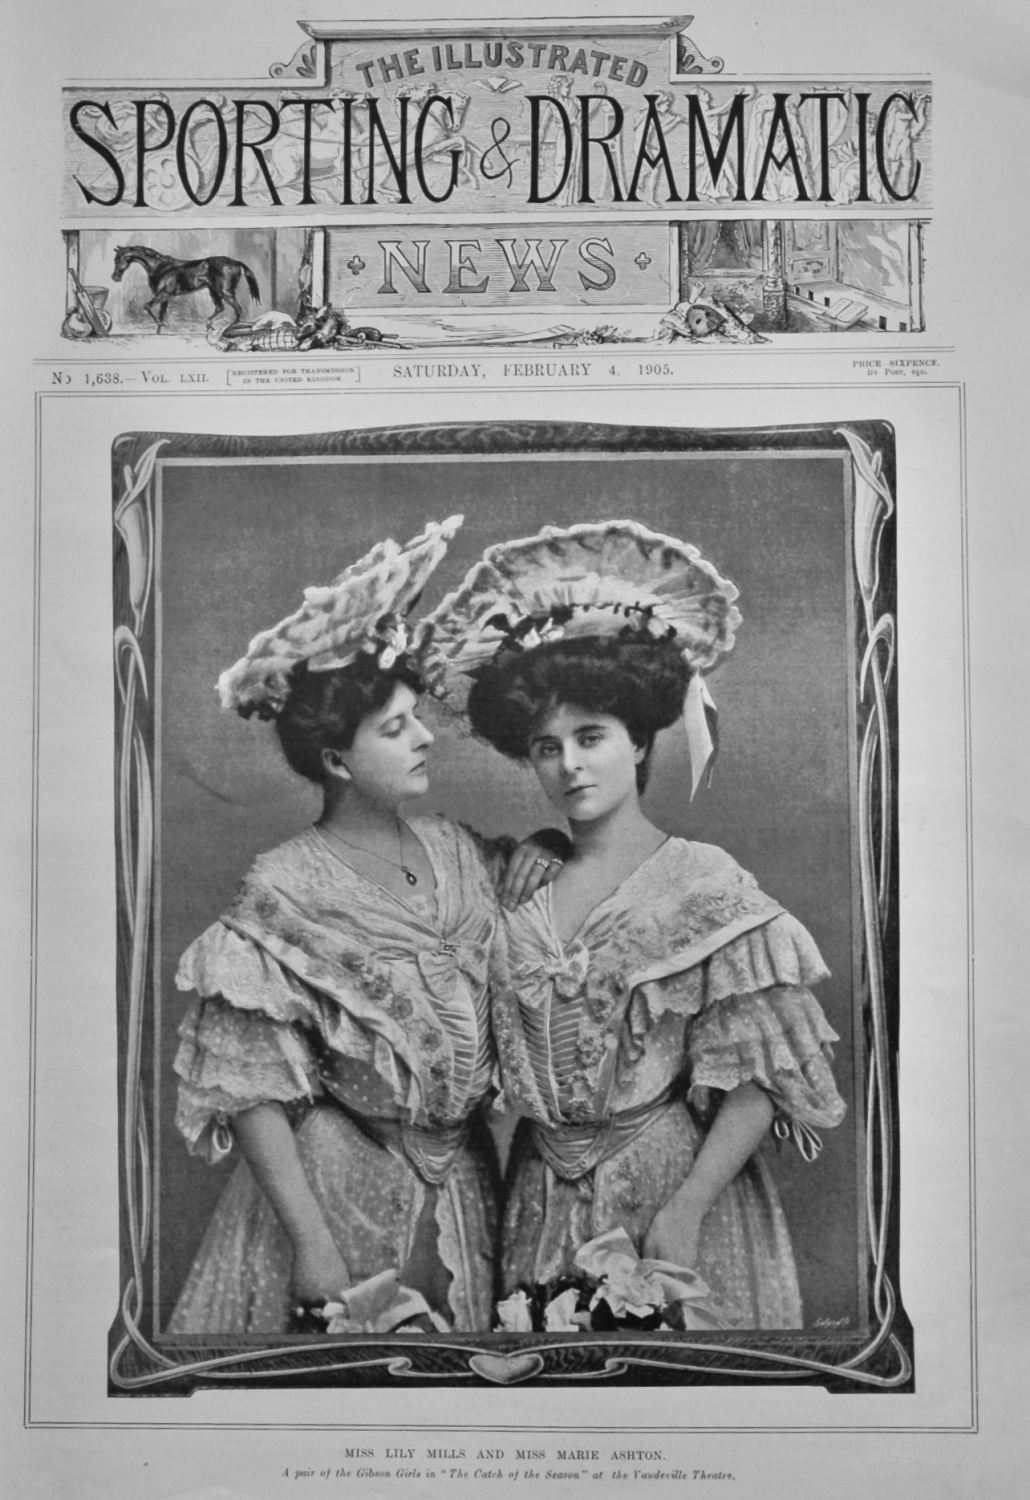 Miss Lily Mills and Miss Marie Ashton.  A Pair of Gibson Girls in